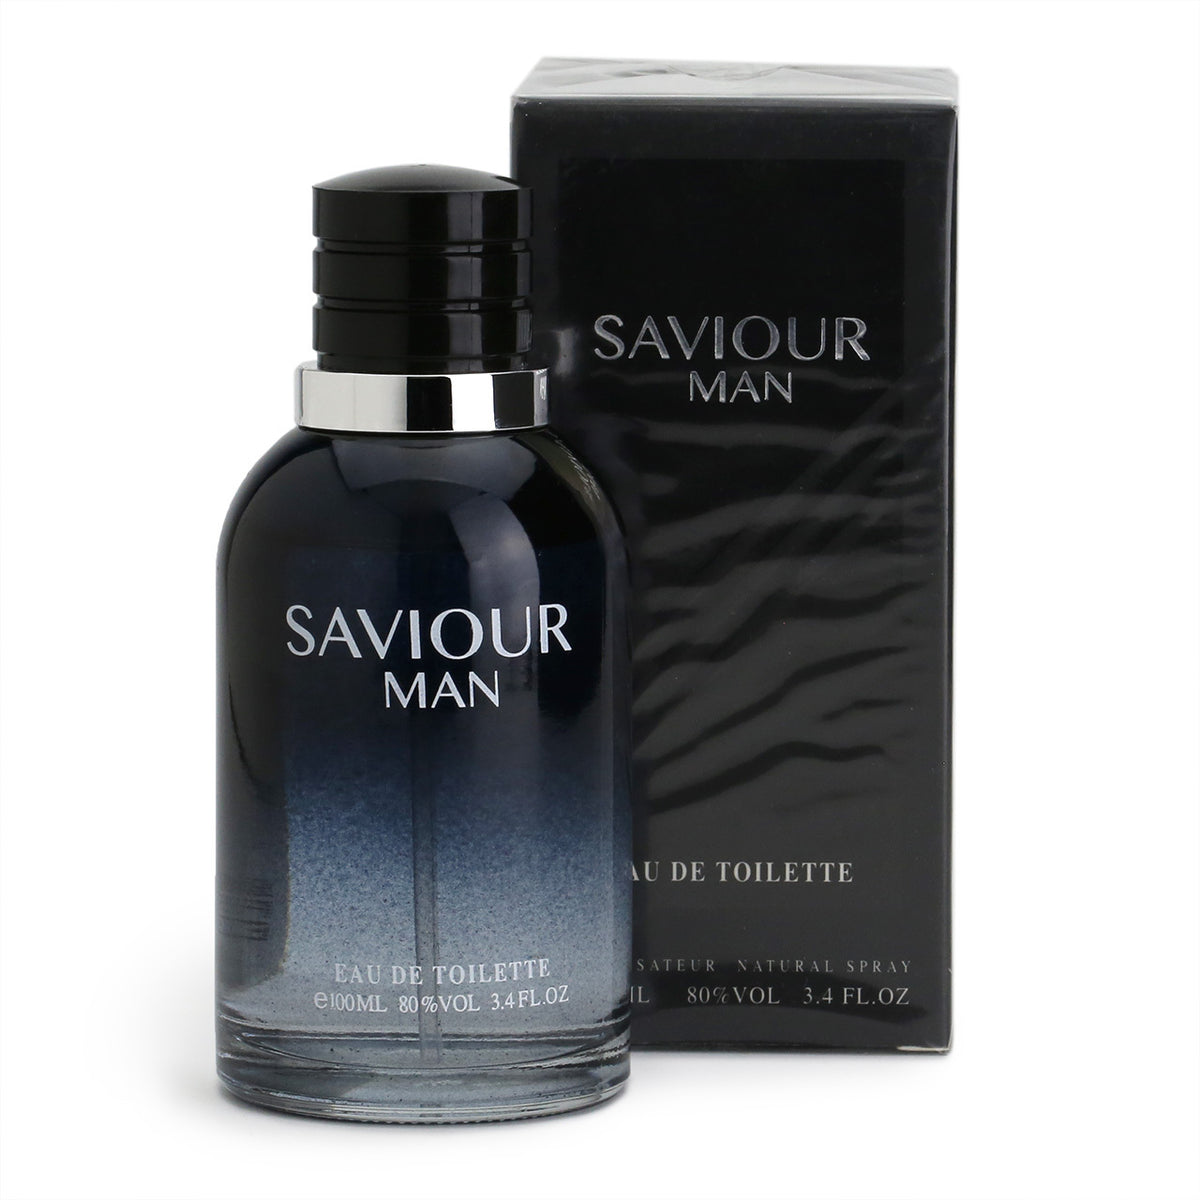 Saviour Man Eau de Toilette 100ml